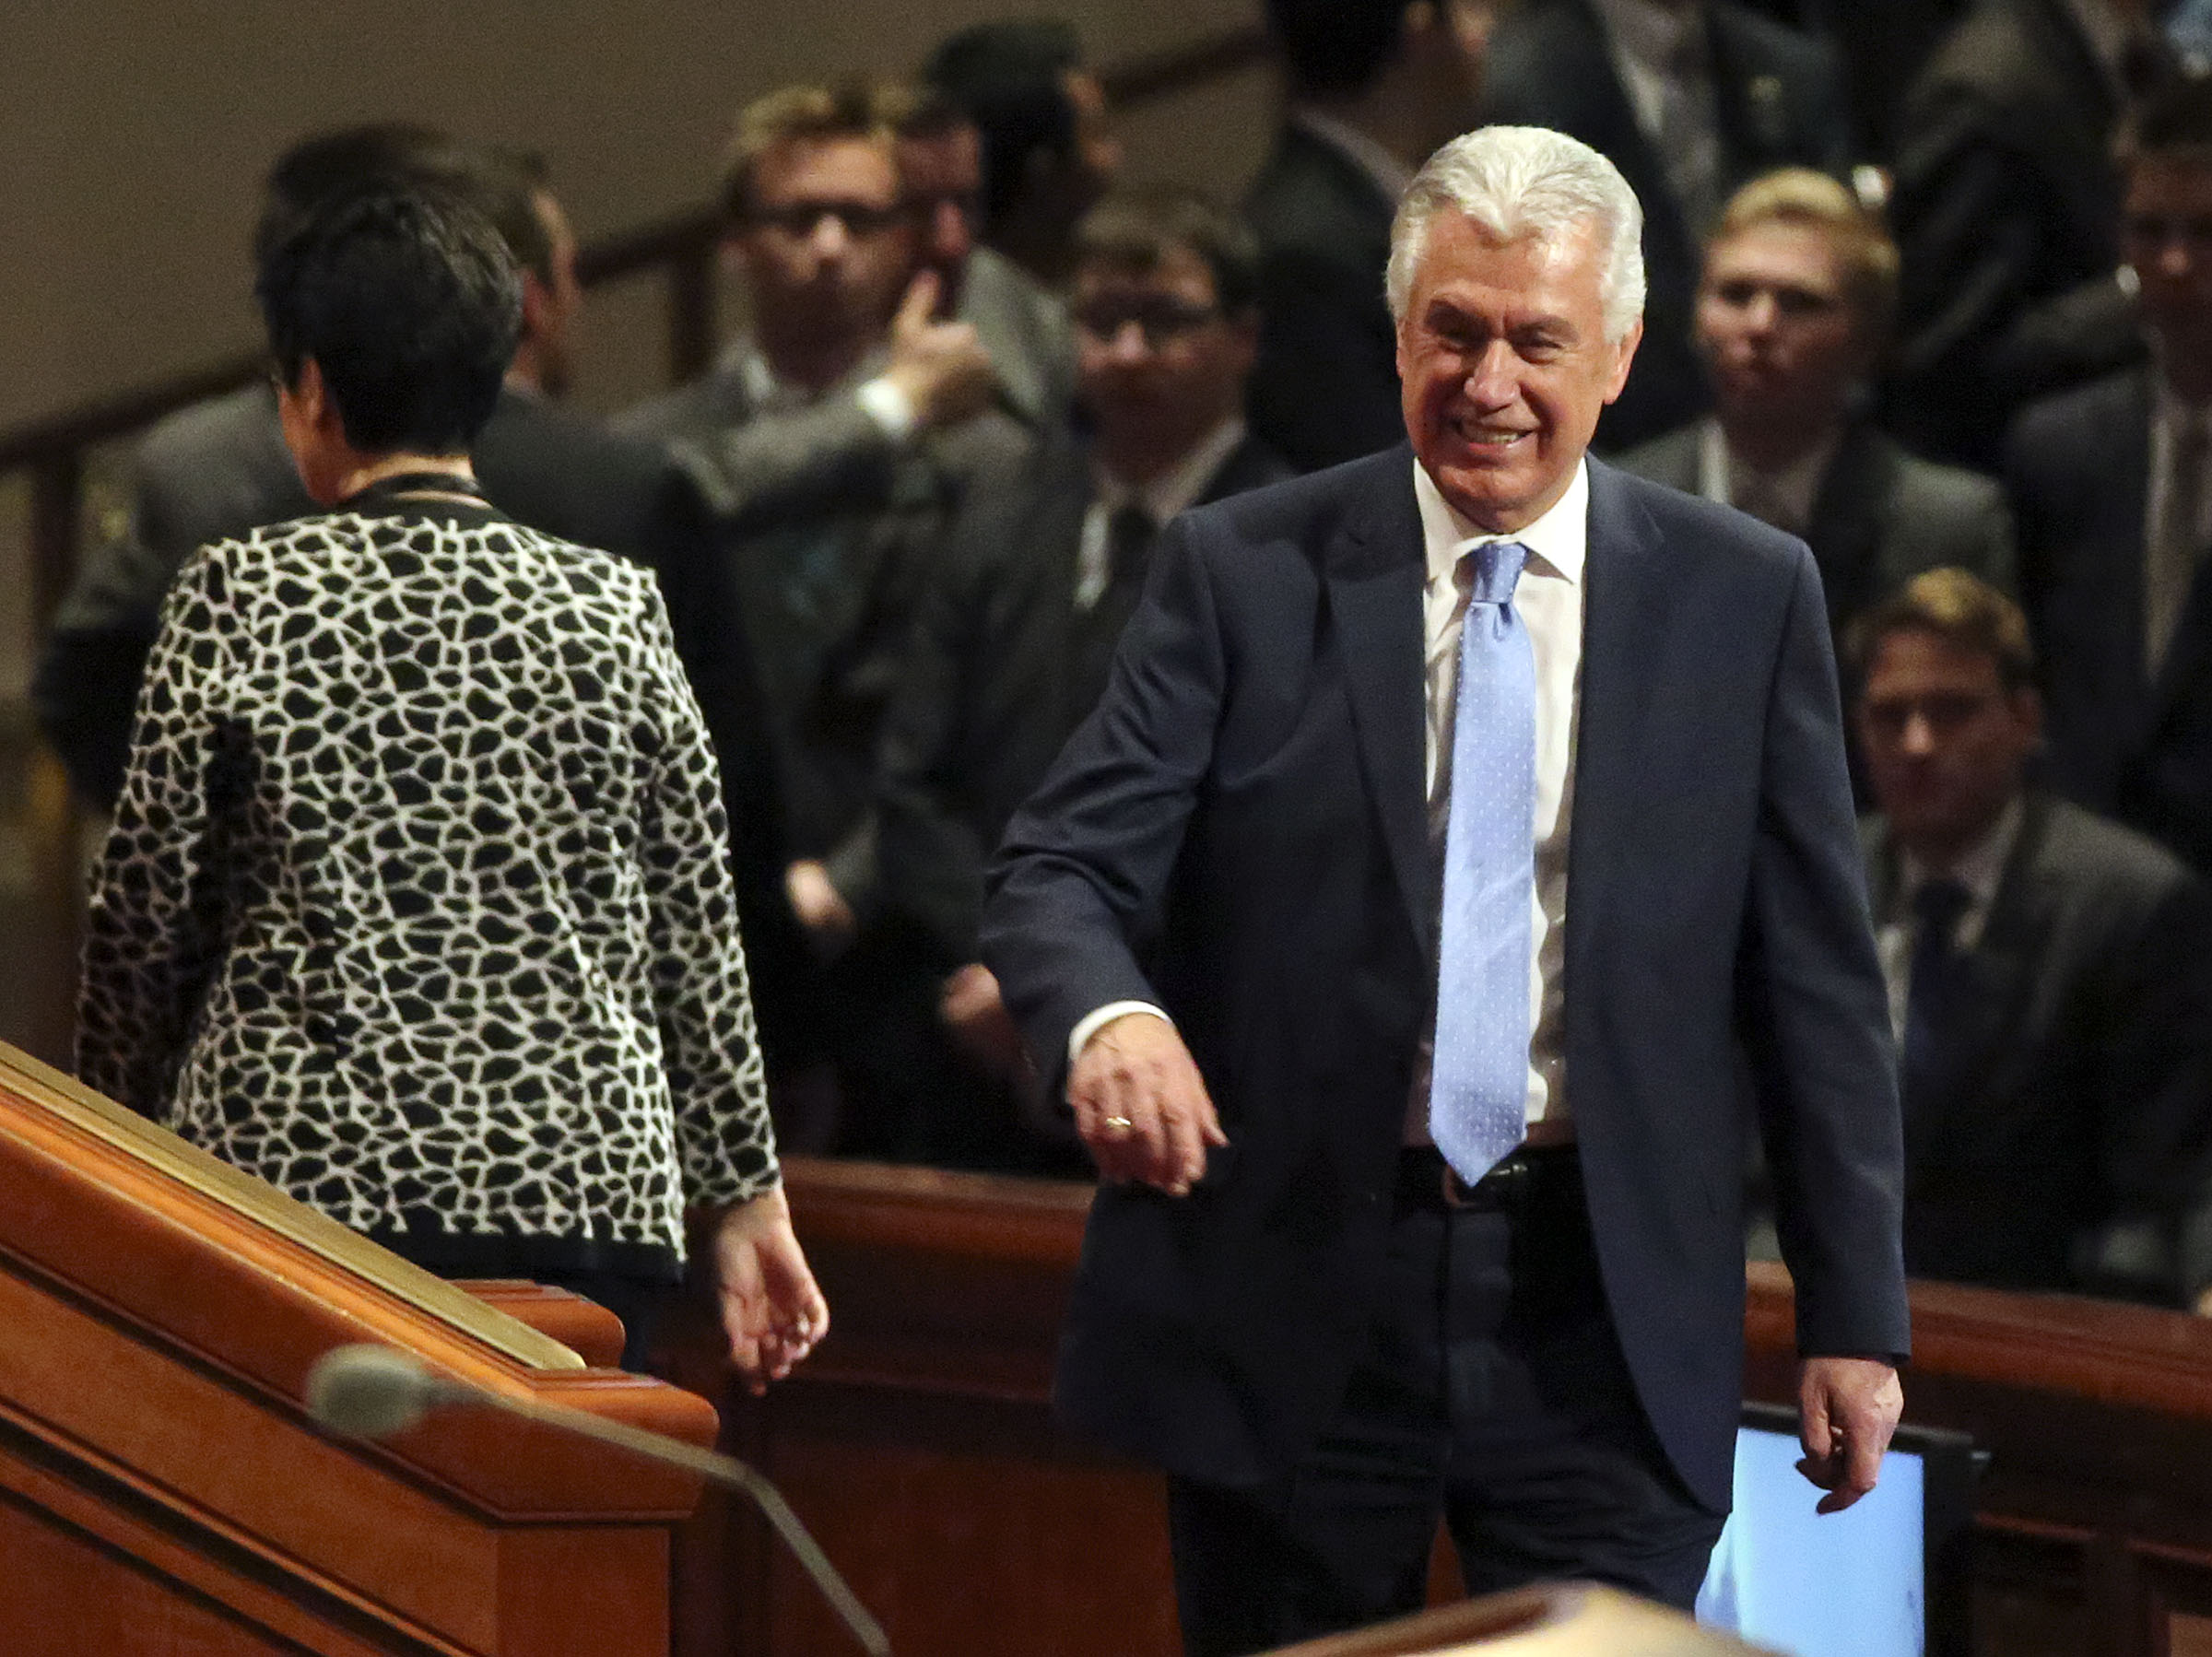 Elder Dieter F. Uchtdorf of the Quorum of the Twelve Apostles arrives for the Sunday afternoon session of the 188th Semiannual General Conference of The Church of Jesus Christ of Latter-day Saints in the Conference Center in downtown Salt Lake City on Sunday, Oct. 7, 2018.